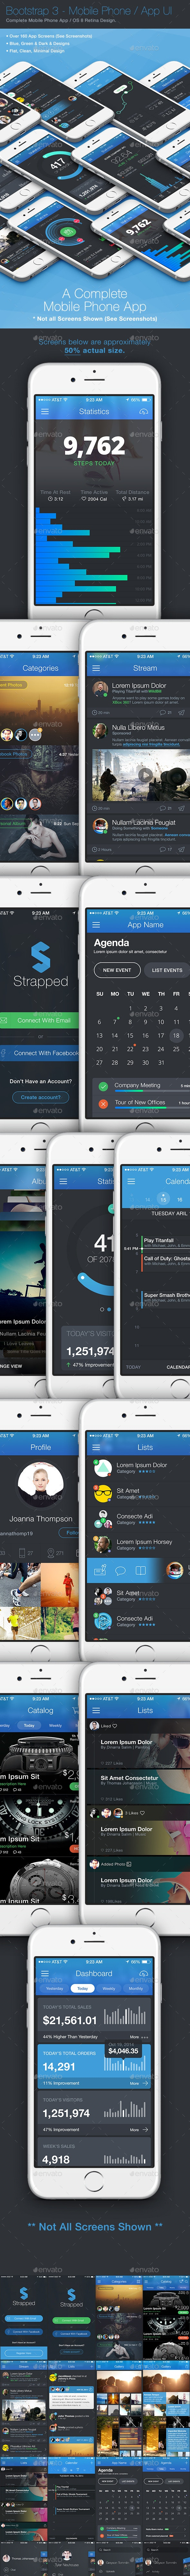 Strapped App / Phone / Mobile UI 3 - User Interfaces Web Elements